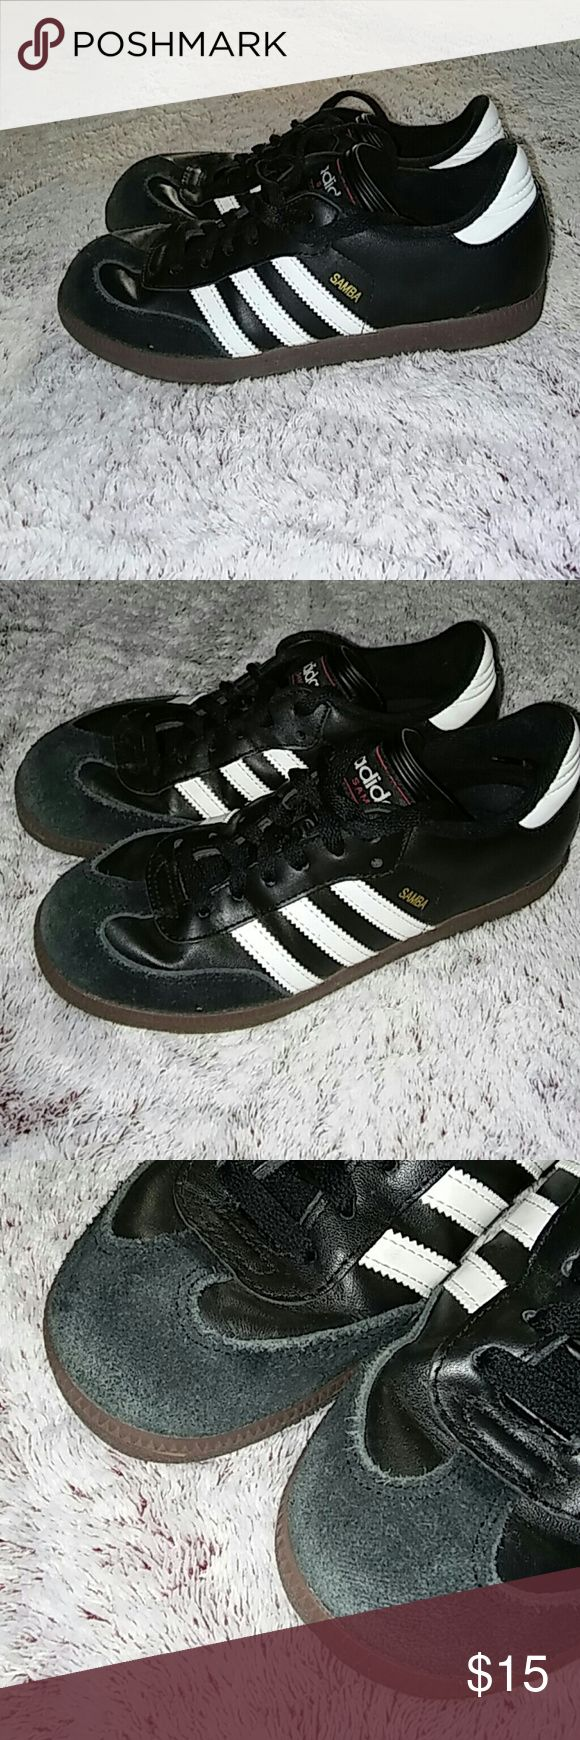 Adidas Samba Shoes, 5.5Y Adidas Samba Shoes Size: 5.5 YOUTH Indoor soccer shoes worn for 7 games! Bottoms are in great condition because they were only worn on the indoor turf! Ends of shoes show the most wear, but still have many more uses! adidas Shoes Athletic Shoes